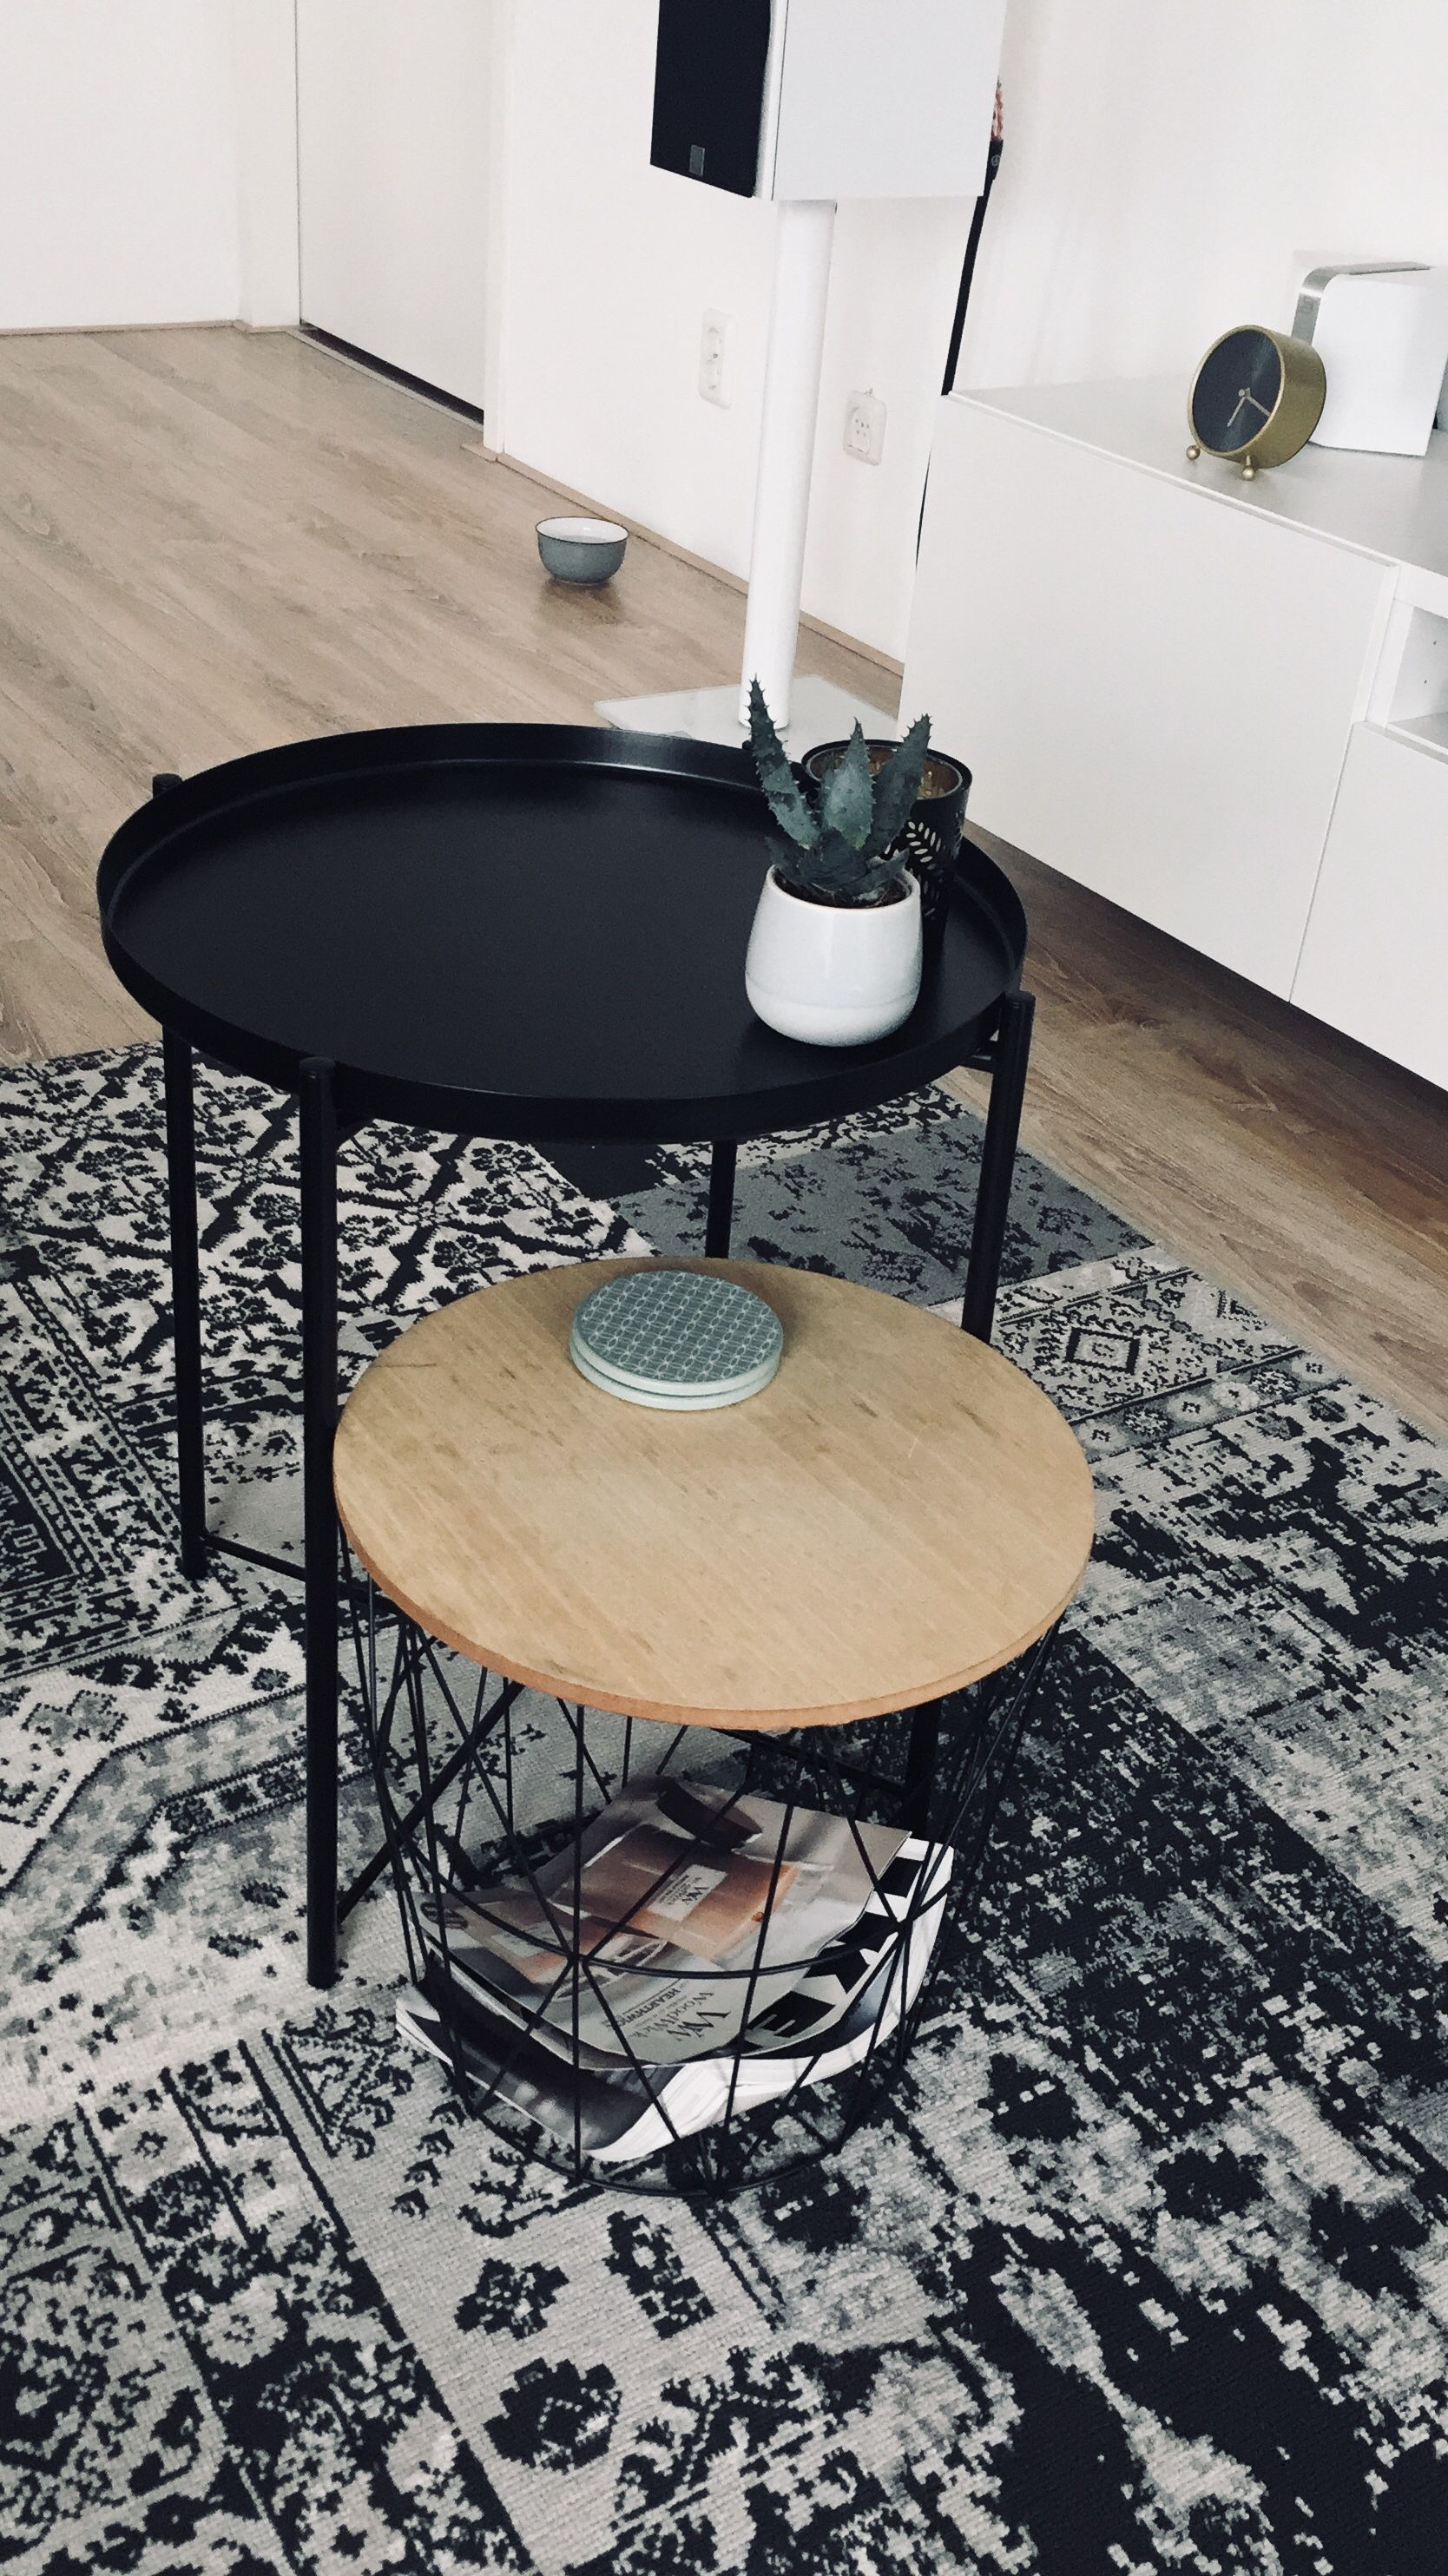 Rond Bijzettafeltje Ikea.Ikea Living Room Tables Table Carpet Gladom Ikea Leenbakker